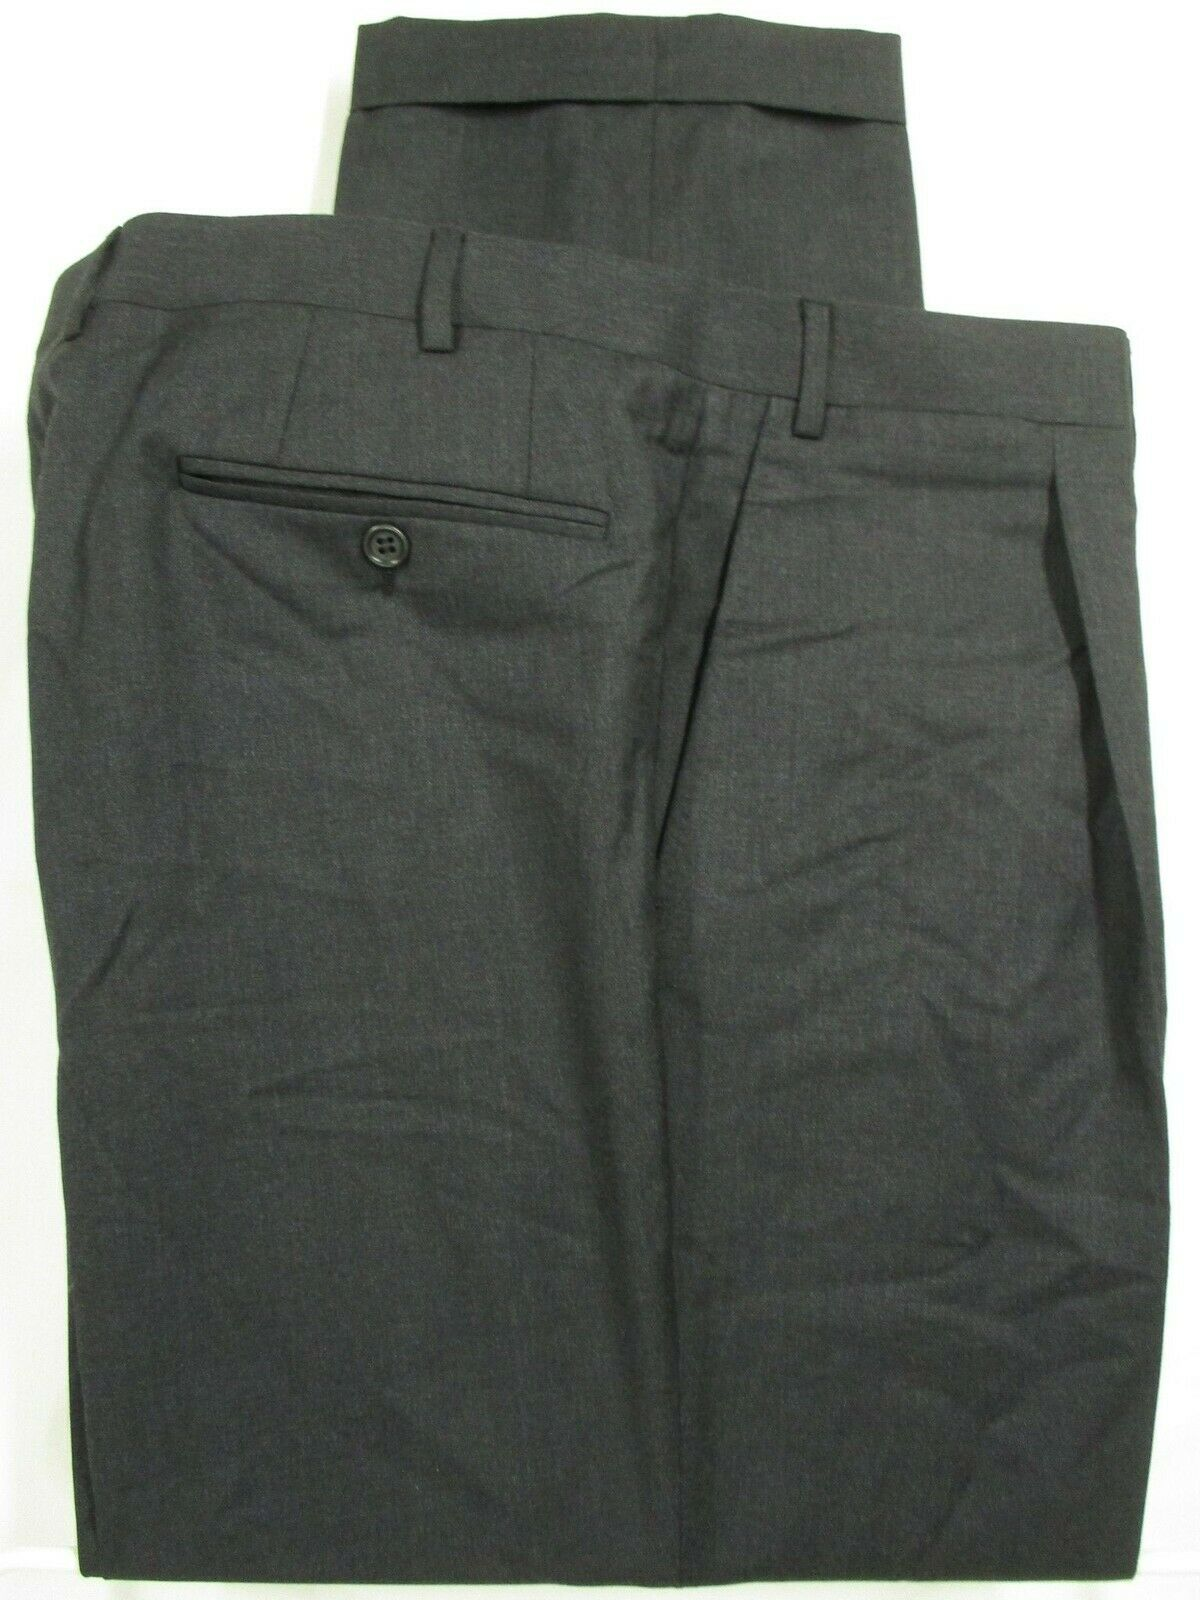 Canali 1934 Mens Charcoal Pleated Wool Dress Pants 38x28.5  Made